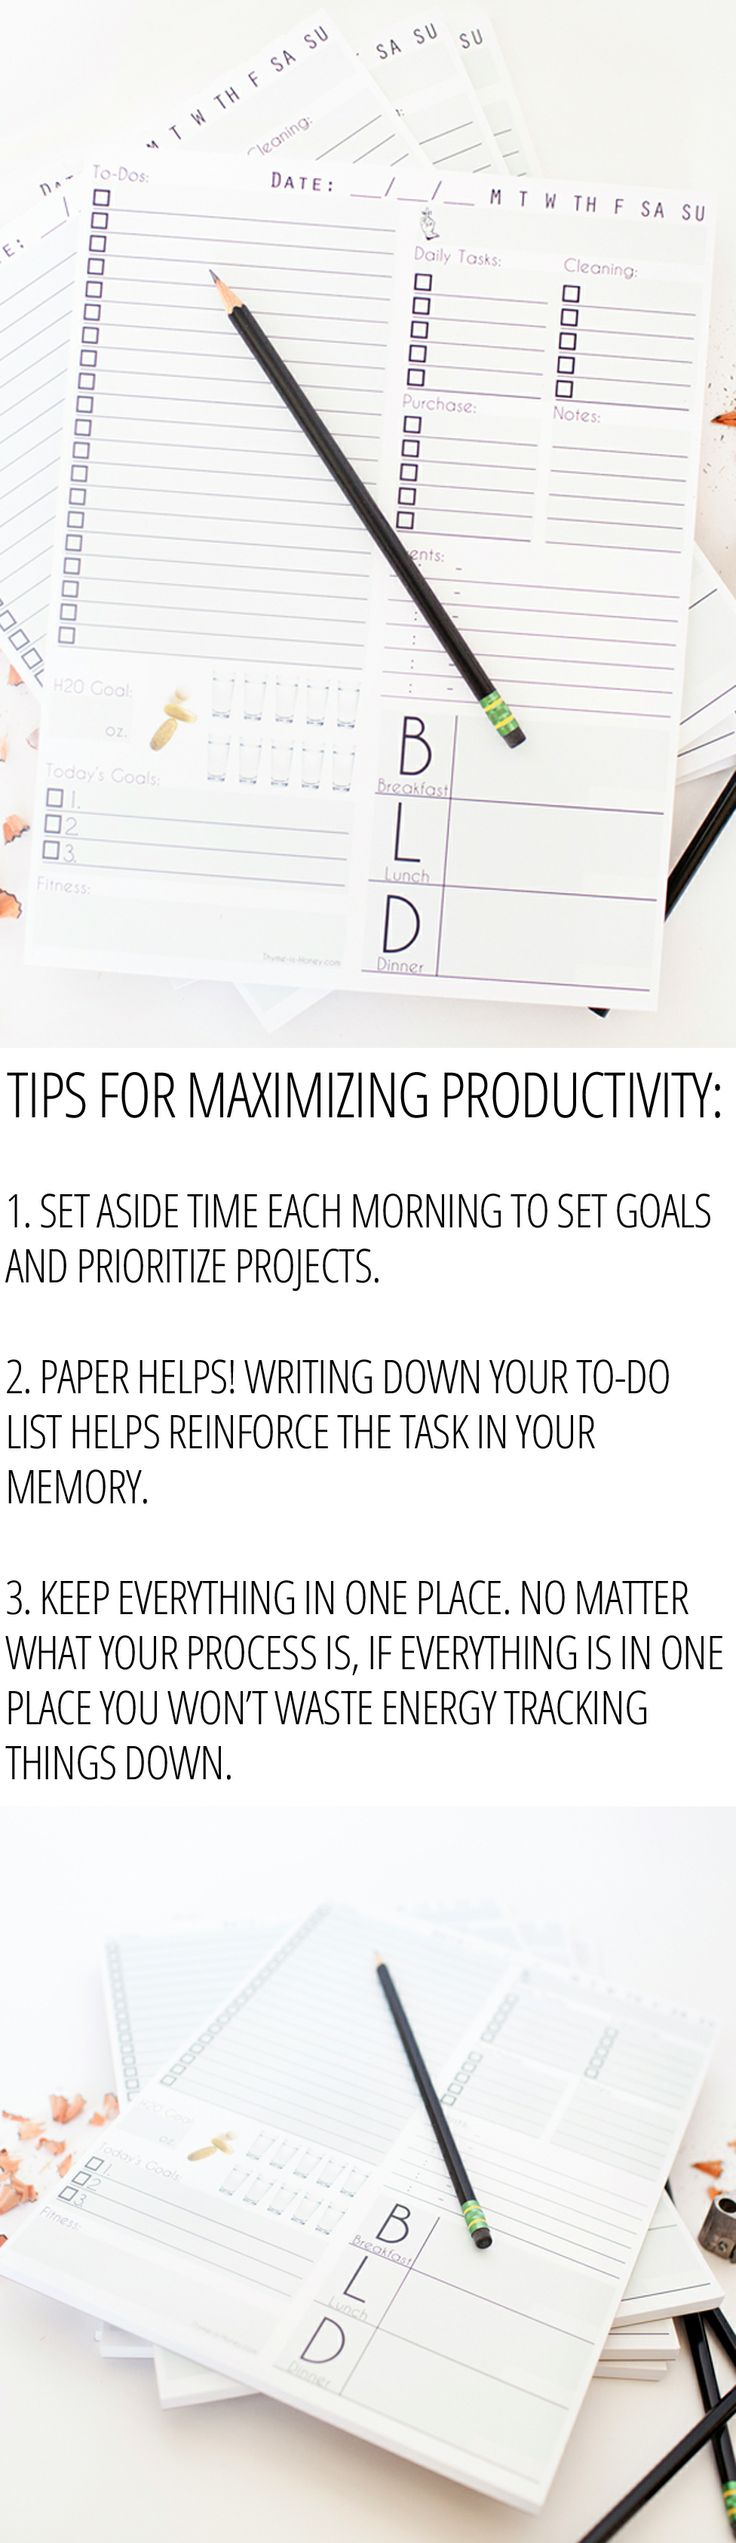 Tips for maximizing your productivity using the daily page notepad---organize your entire day on one page.